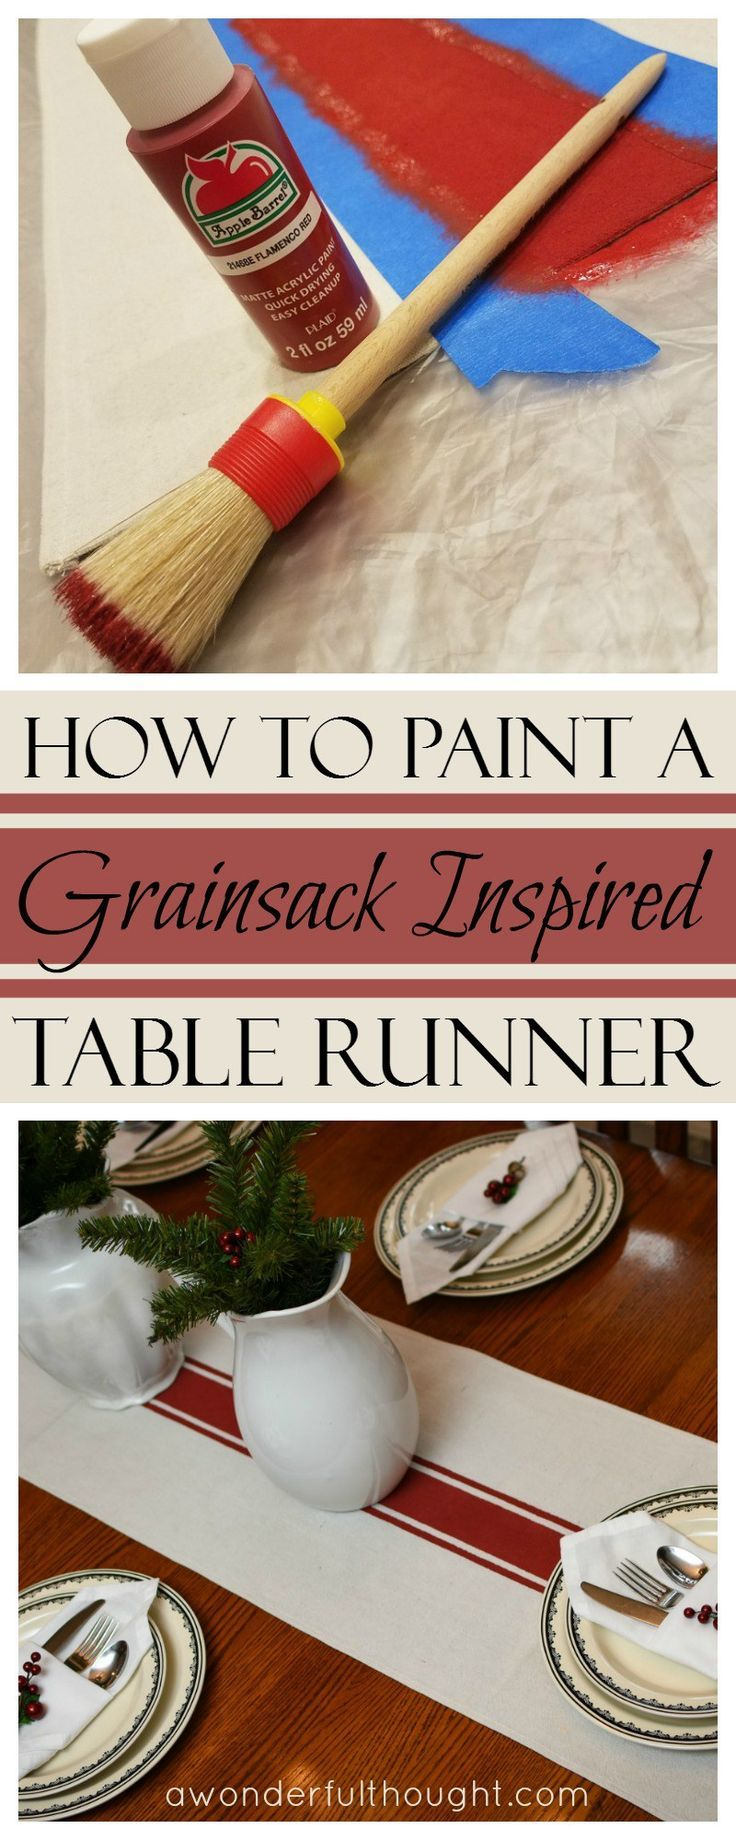 Check Out My Tutorial On How To Paint A Grainsack Inspired Table Runner. It  Includes